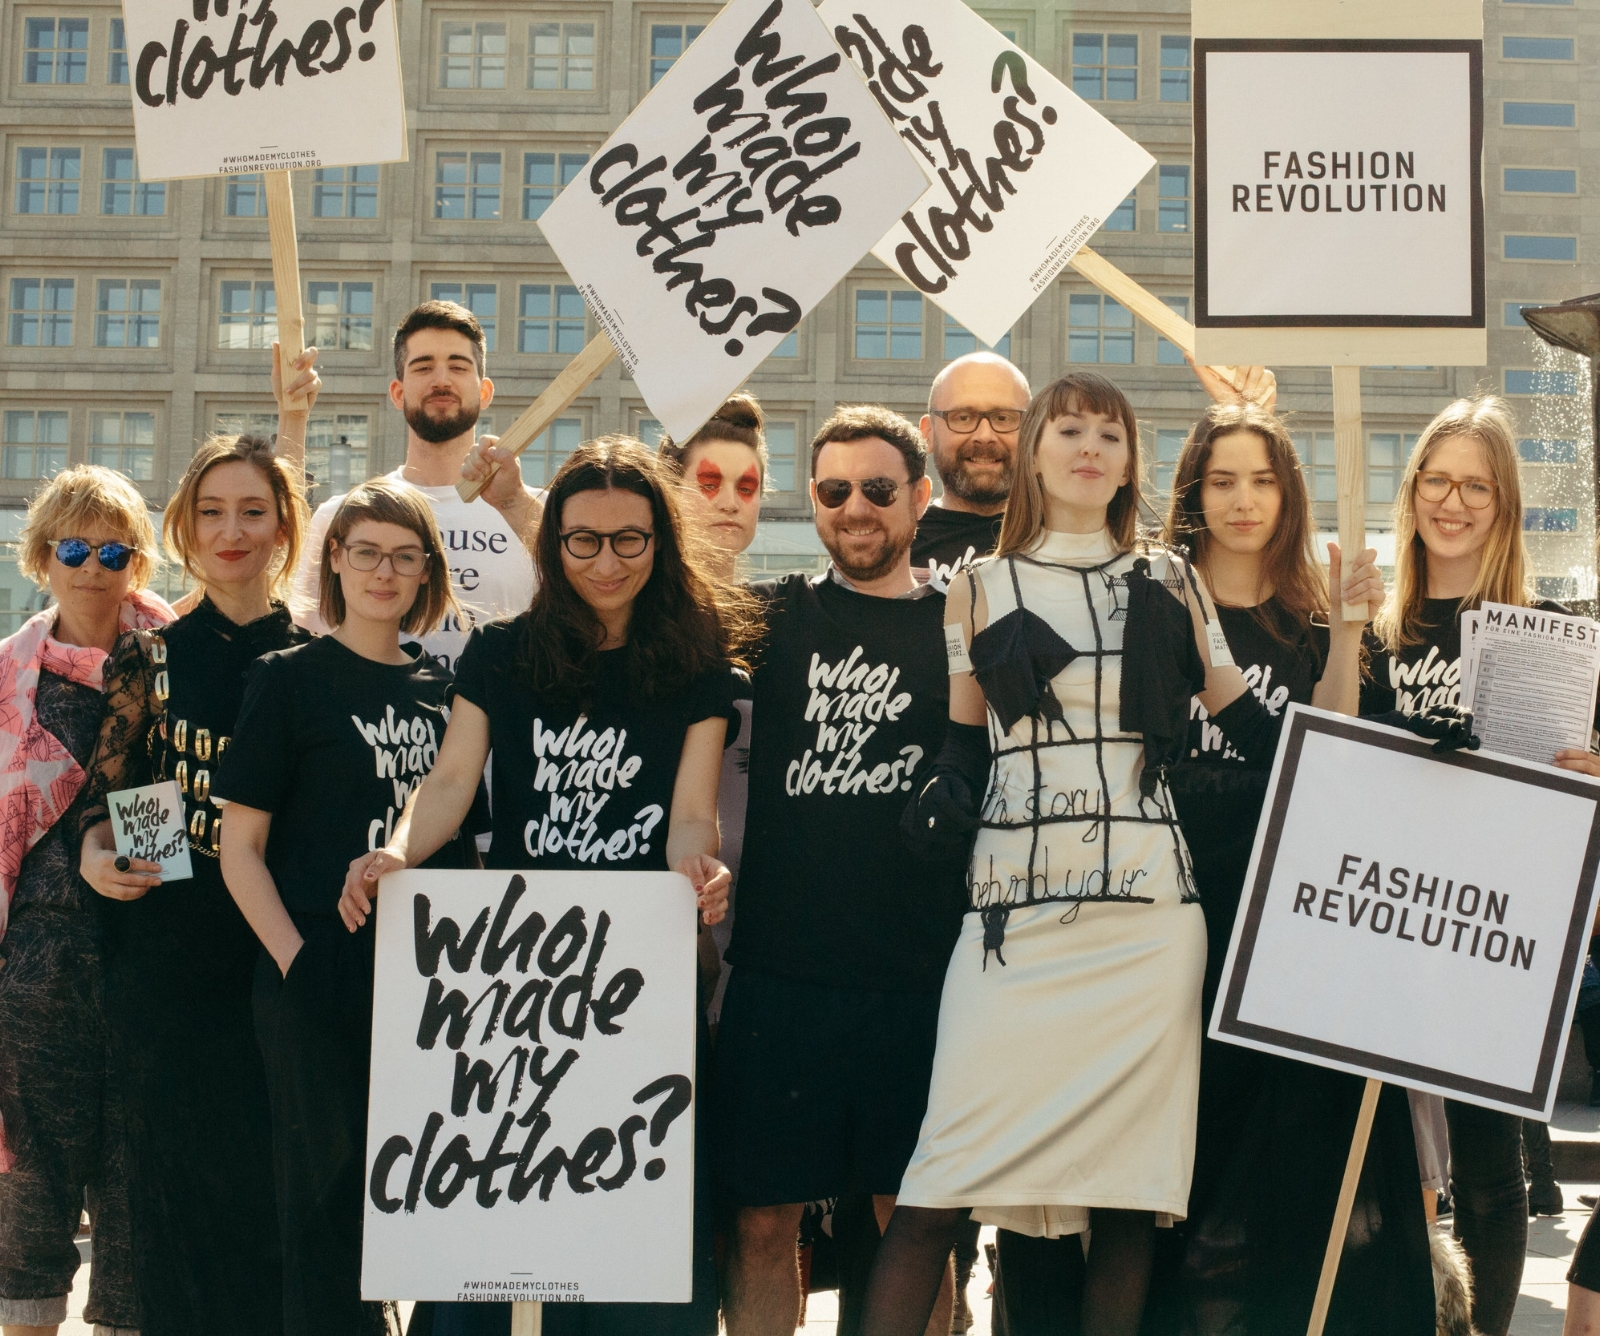 Group photo after the Fashion Revolution flash mob show in Berlin 2018 /captured by Nikolett Madai